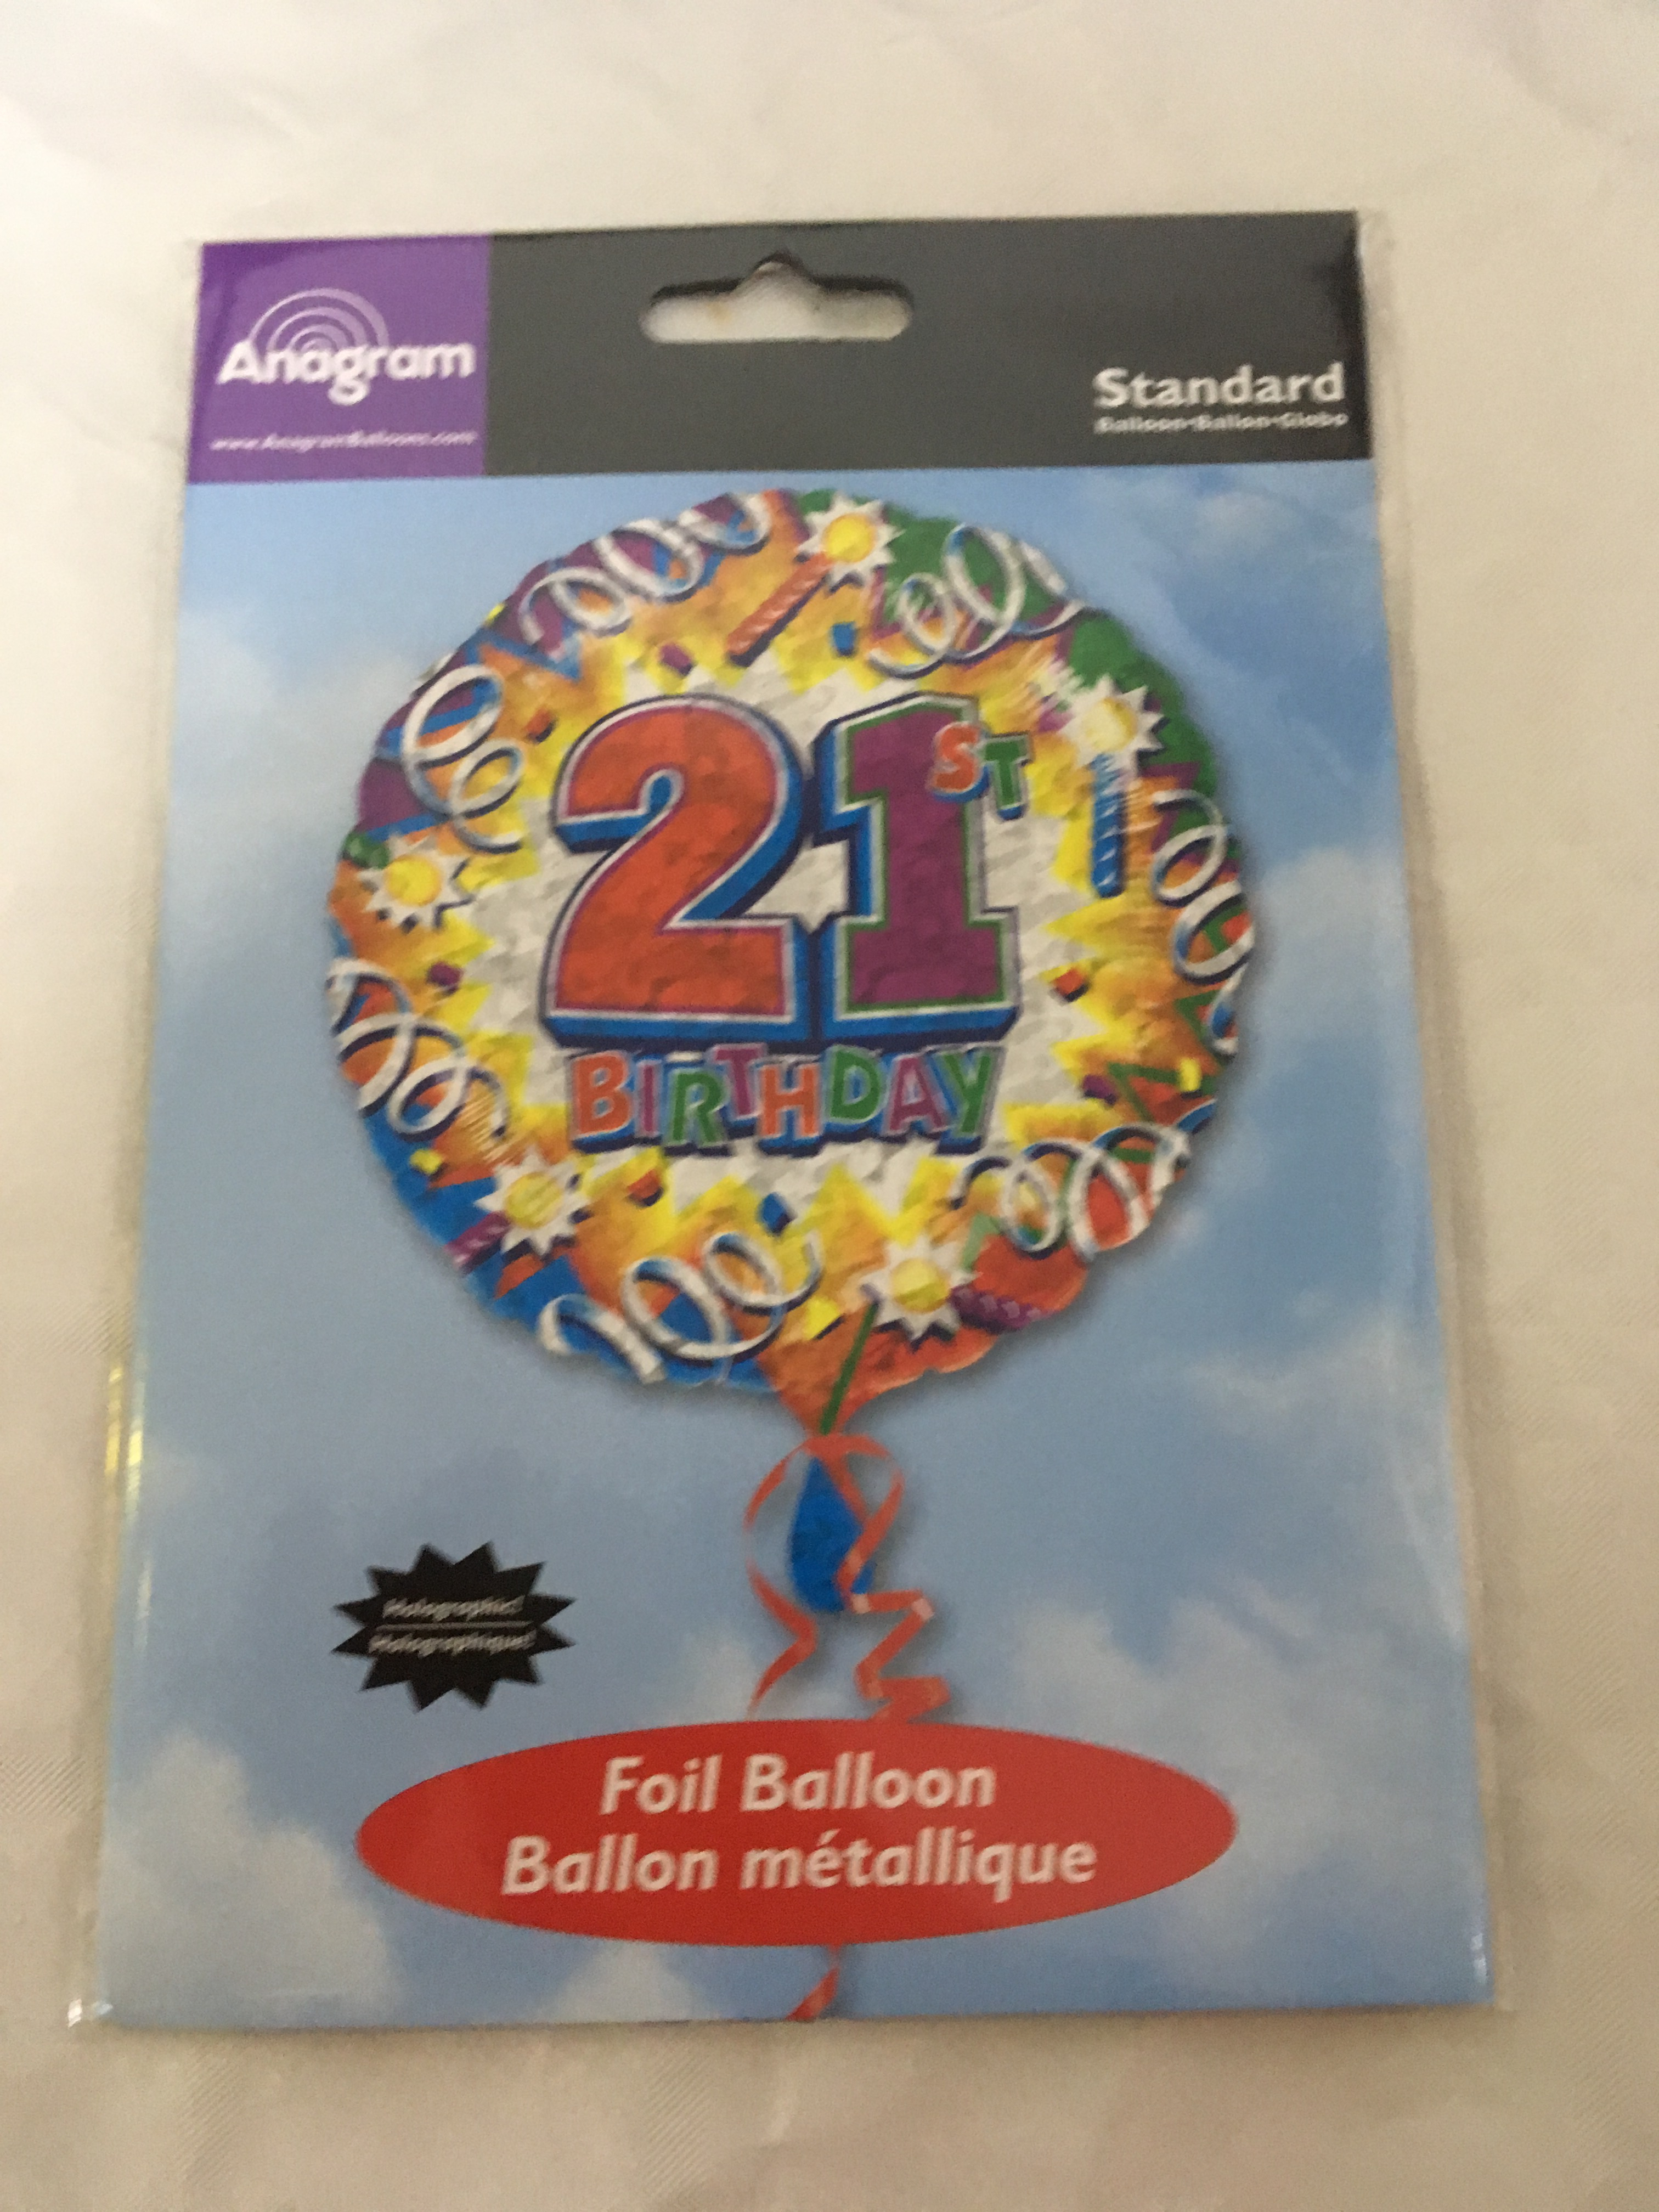 Age 21 multicoloured streamers holographic foil balloon